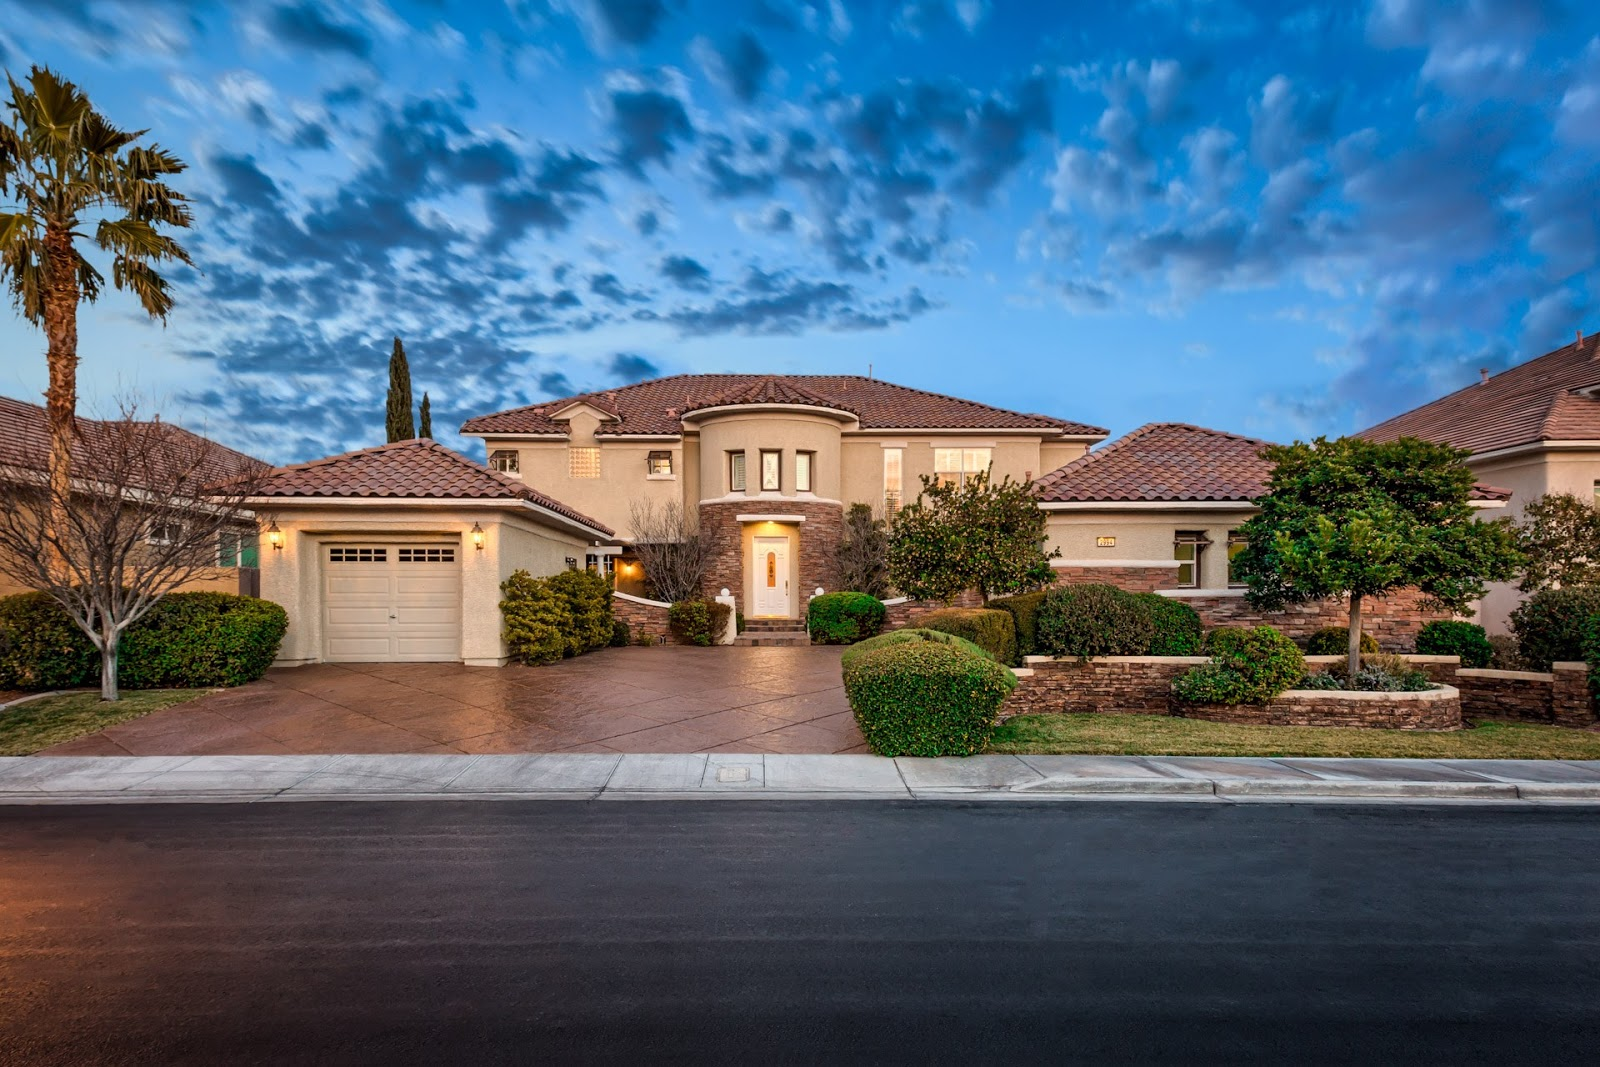 Beautiful hlaomes for sale las vegas nevada by robert for Homes up for auction